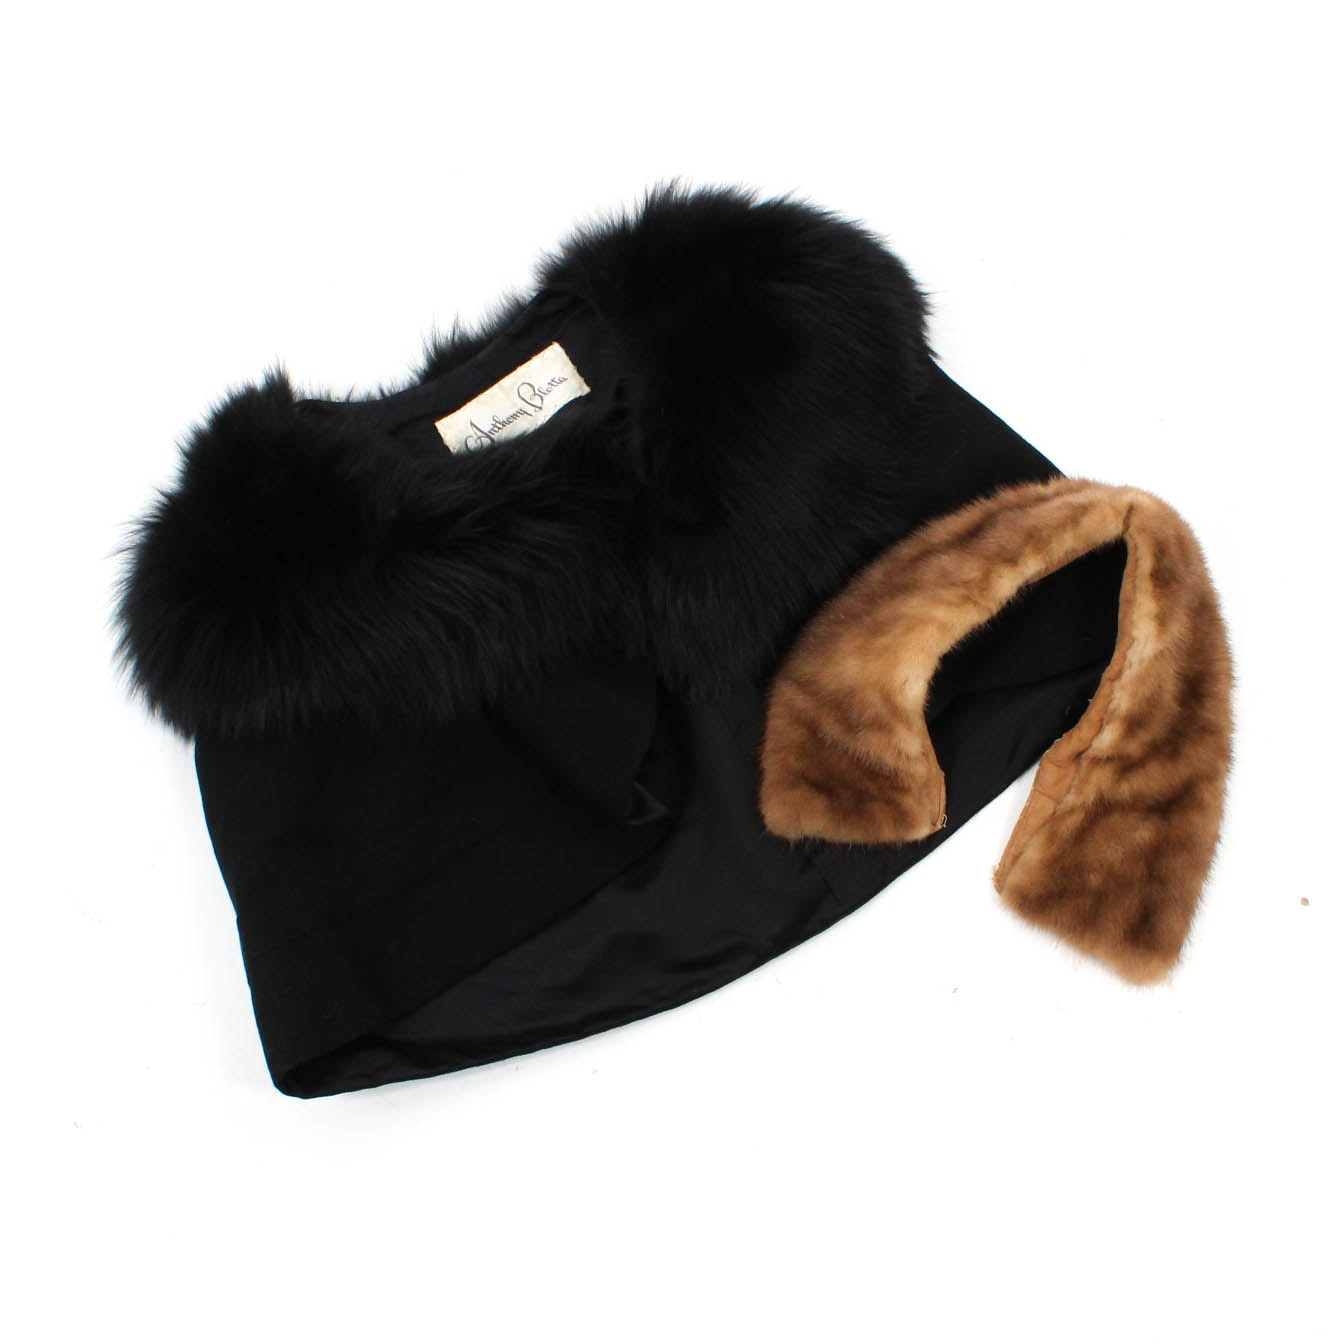 Vintage Anthony Blotta Black Fox Fur Collared Wool Capelet and a Mink Fur Collar